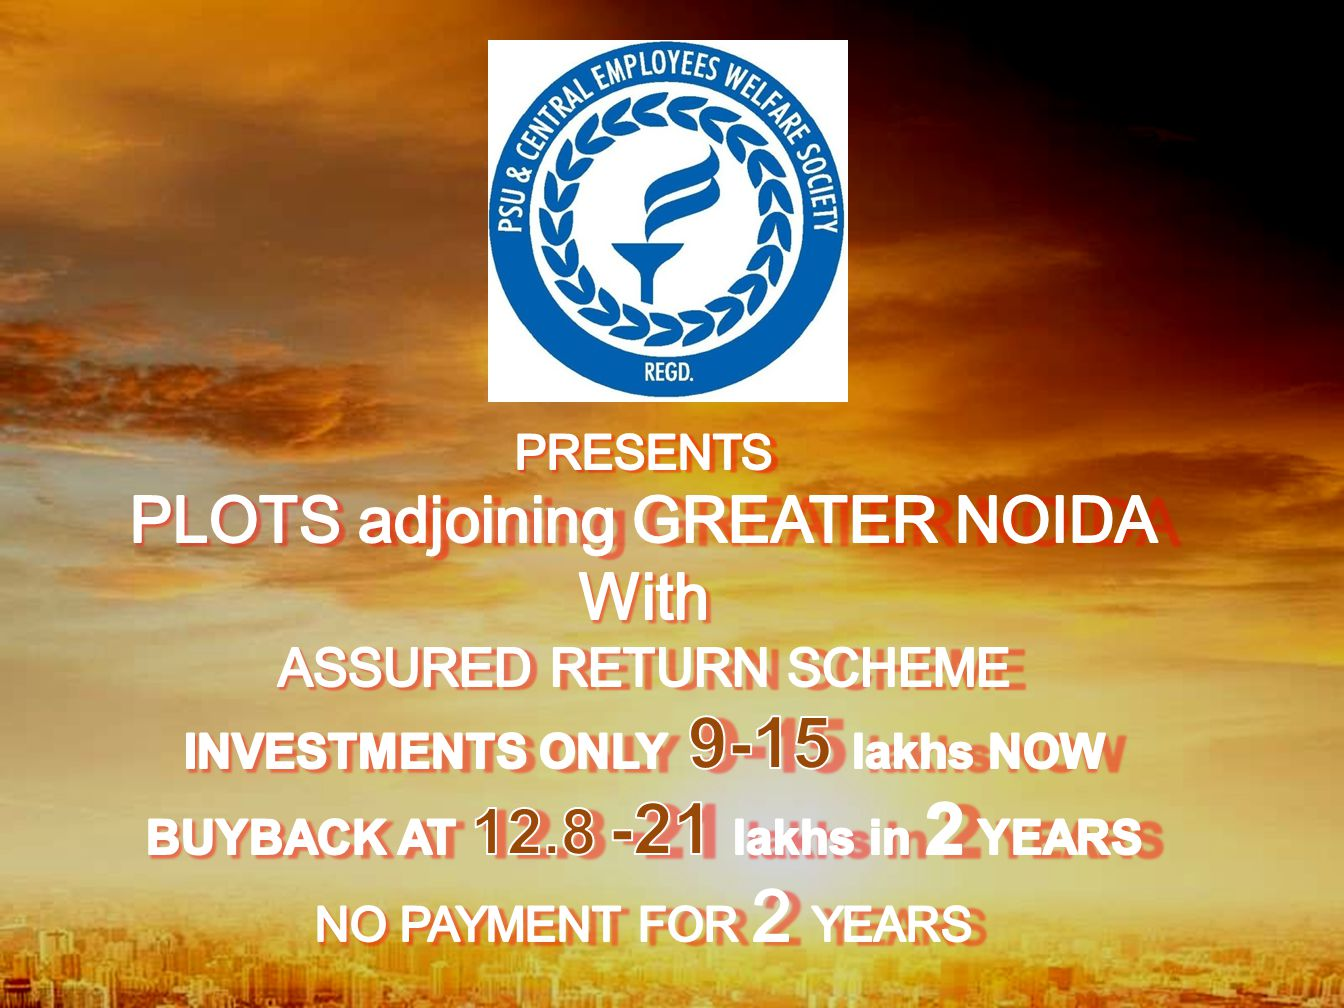 INVESTMENTS ONLY 9-15 lakhs NOW BUYBACK AT 12.8 -21 lakhs in 2 YEARS